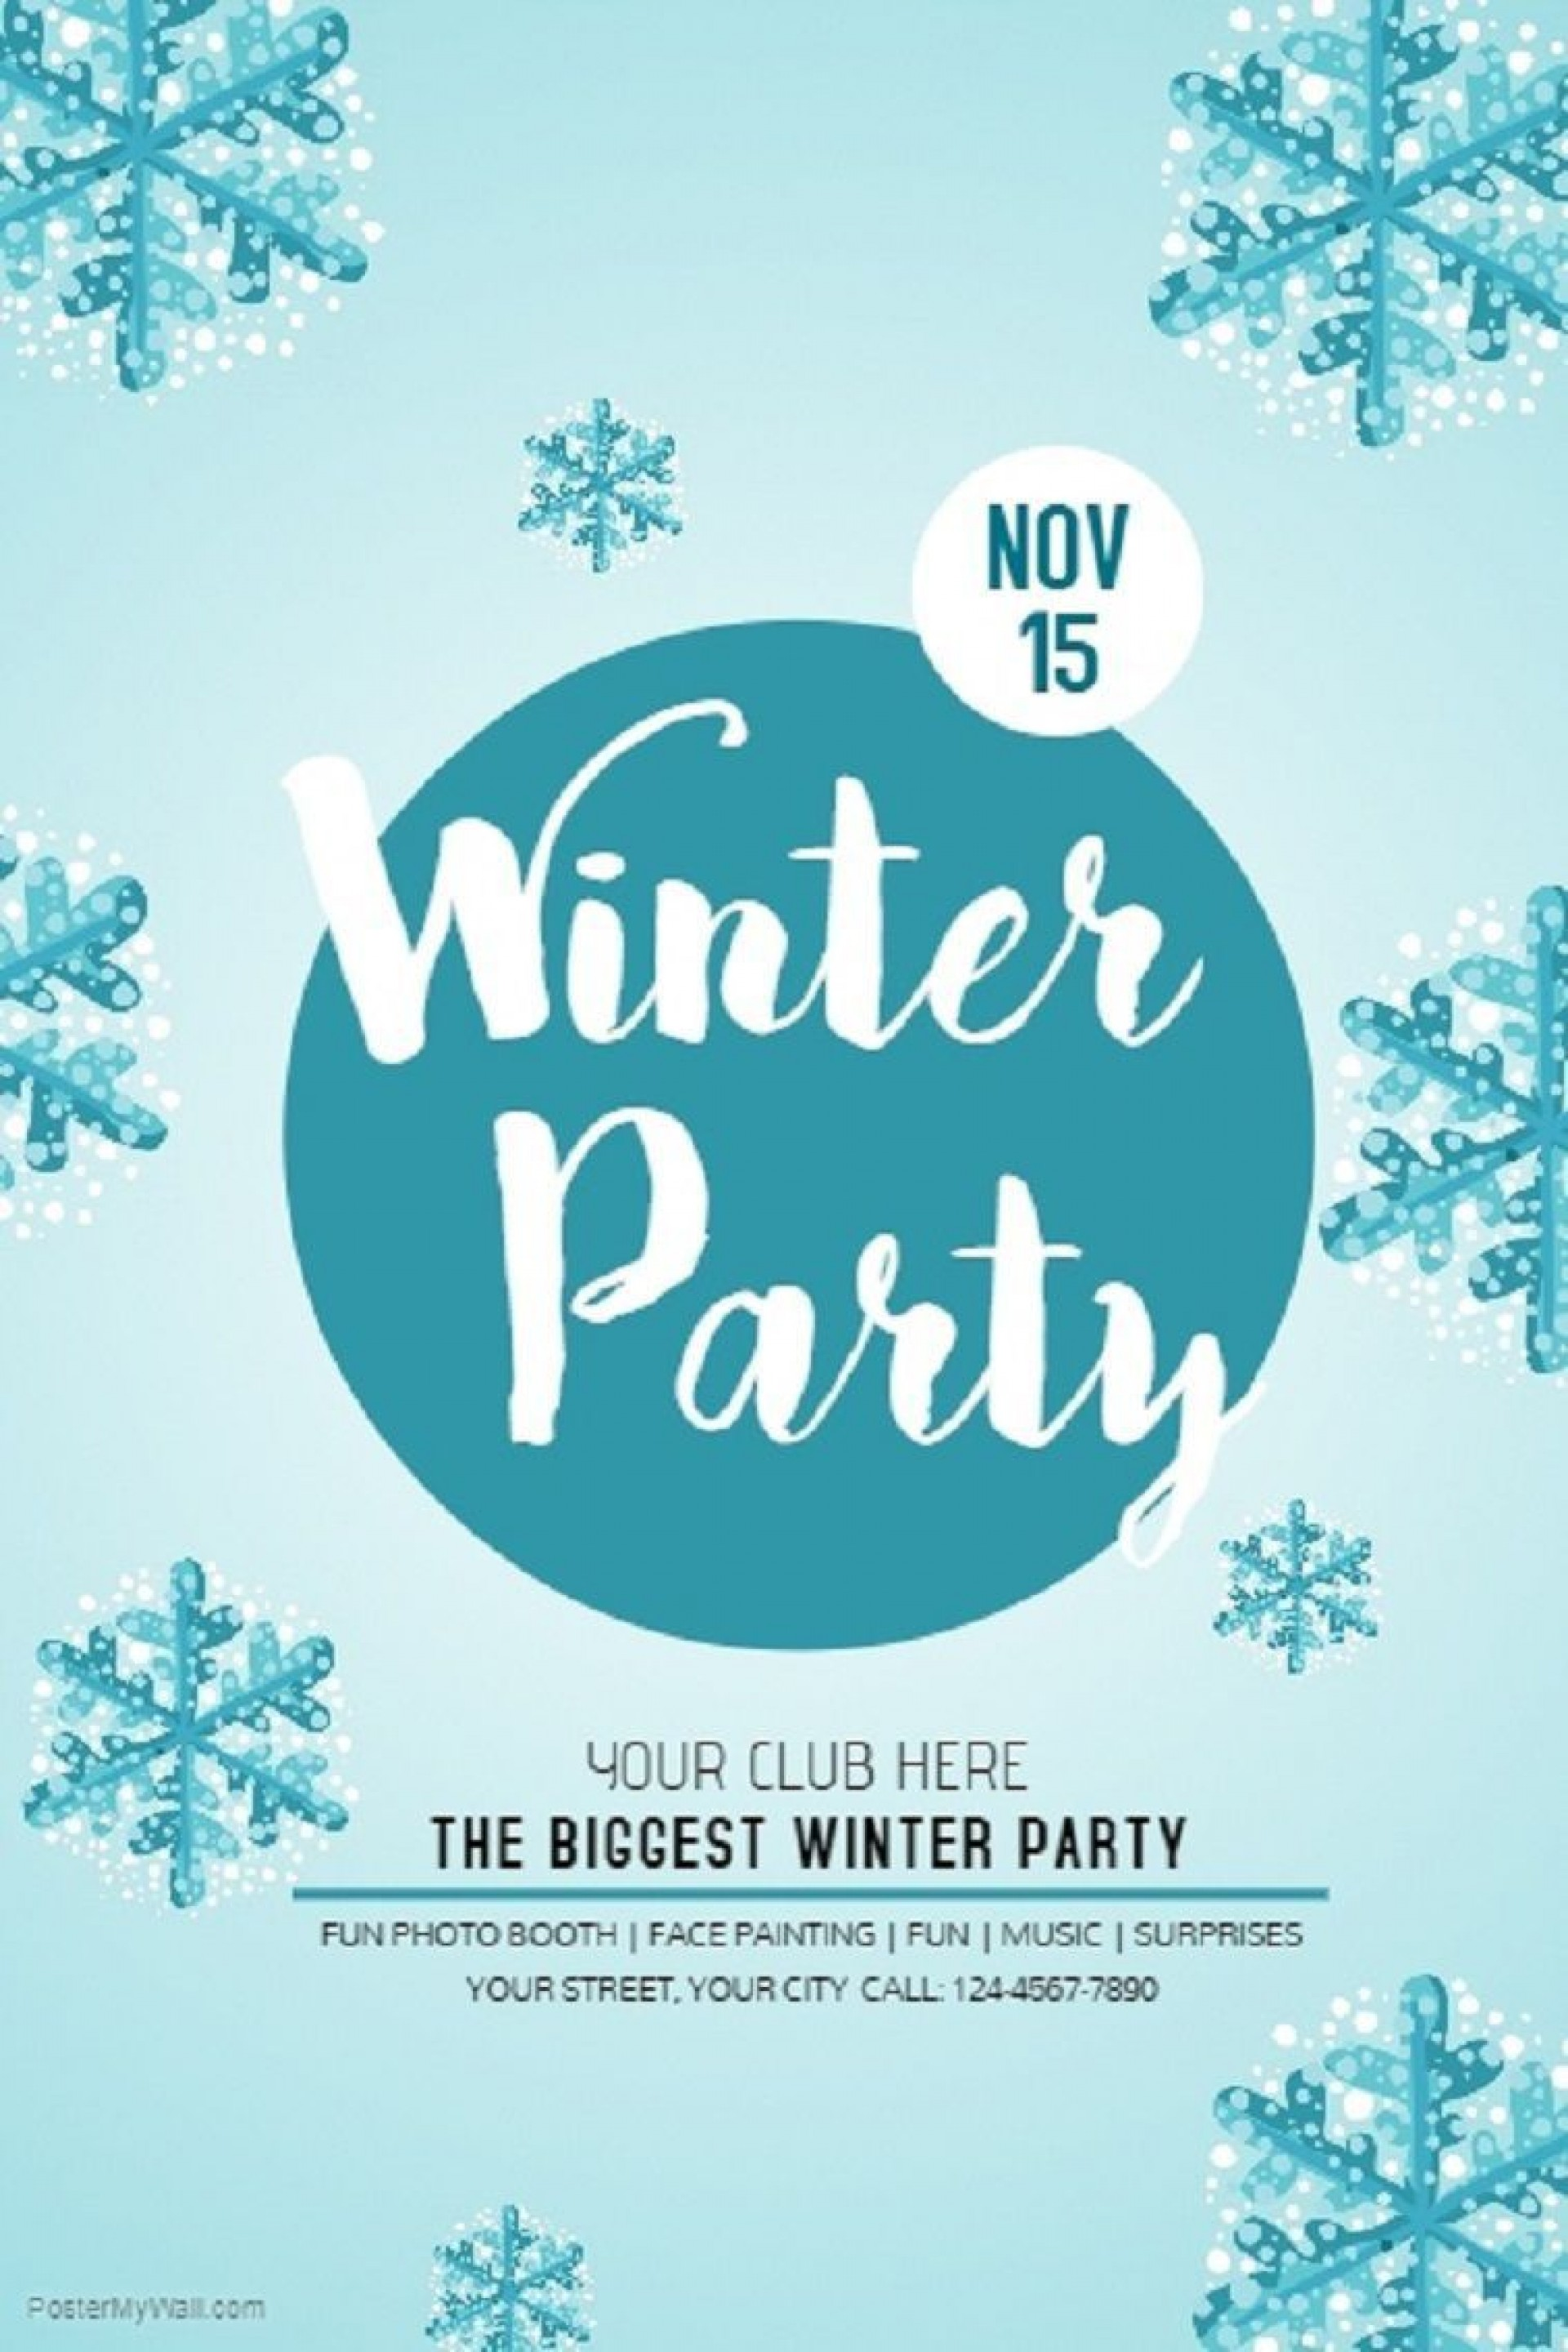 005 Archaicawful Holiday Party Flyer Template Free Highest Clarity  Office1920